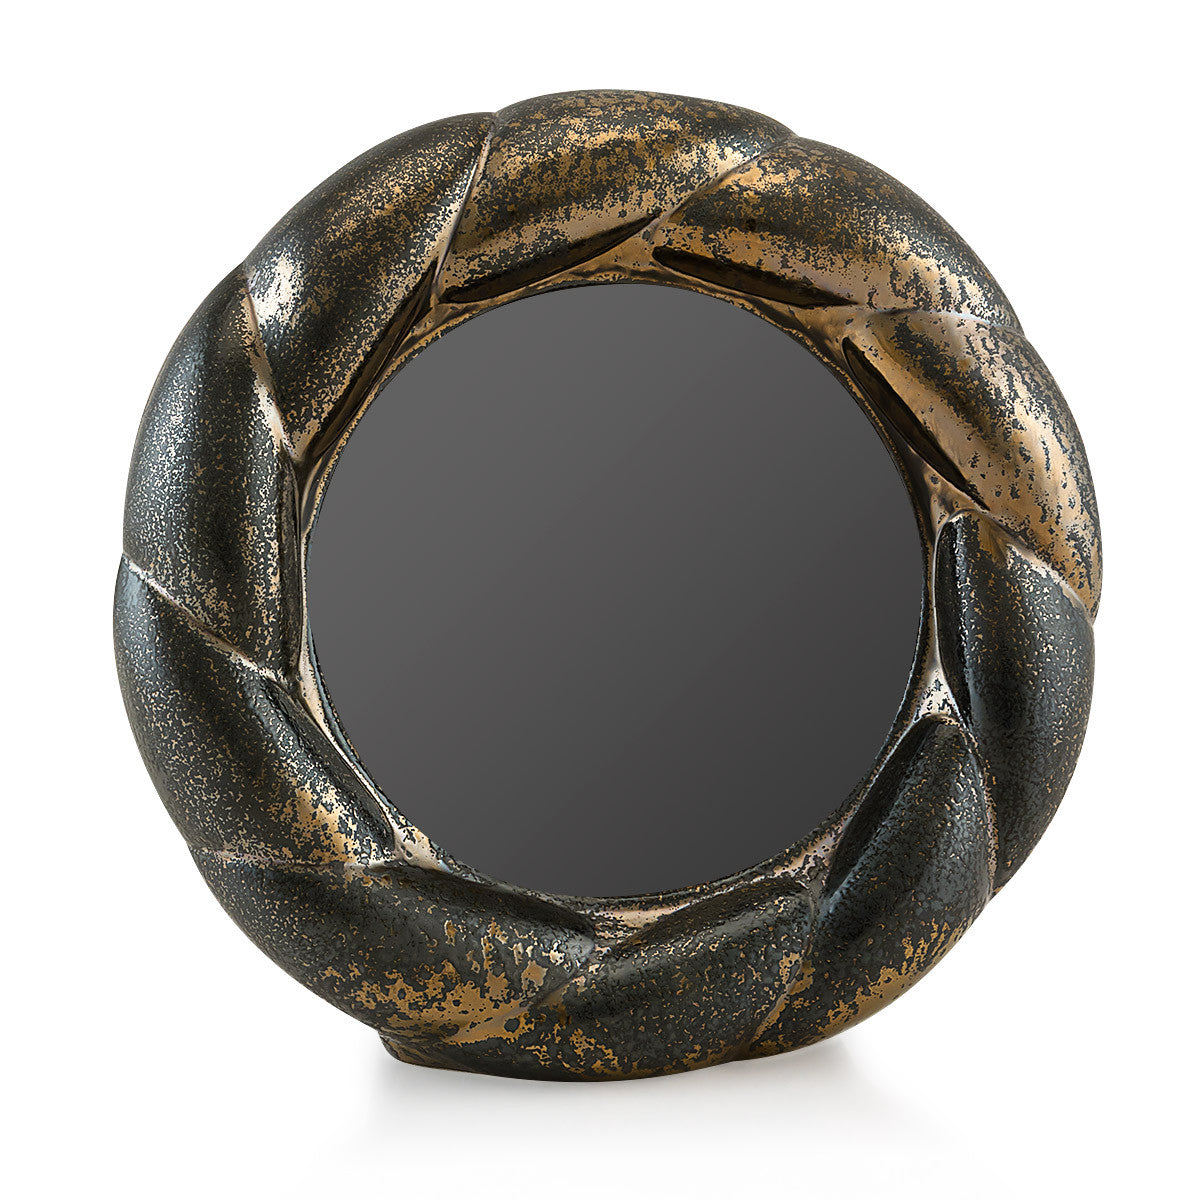 Ceramic twisted picture frame in burnished bronze finish